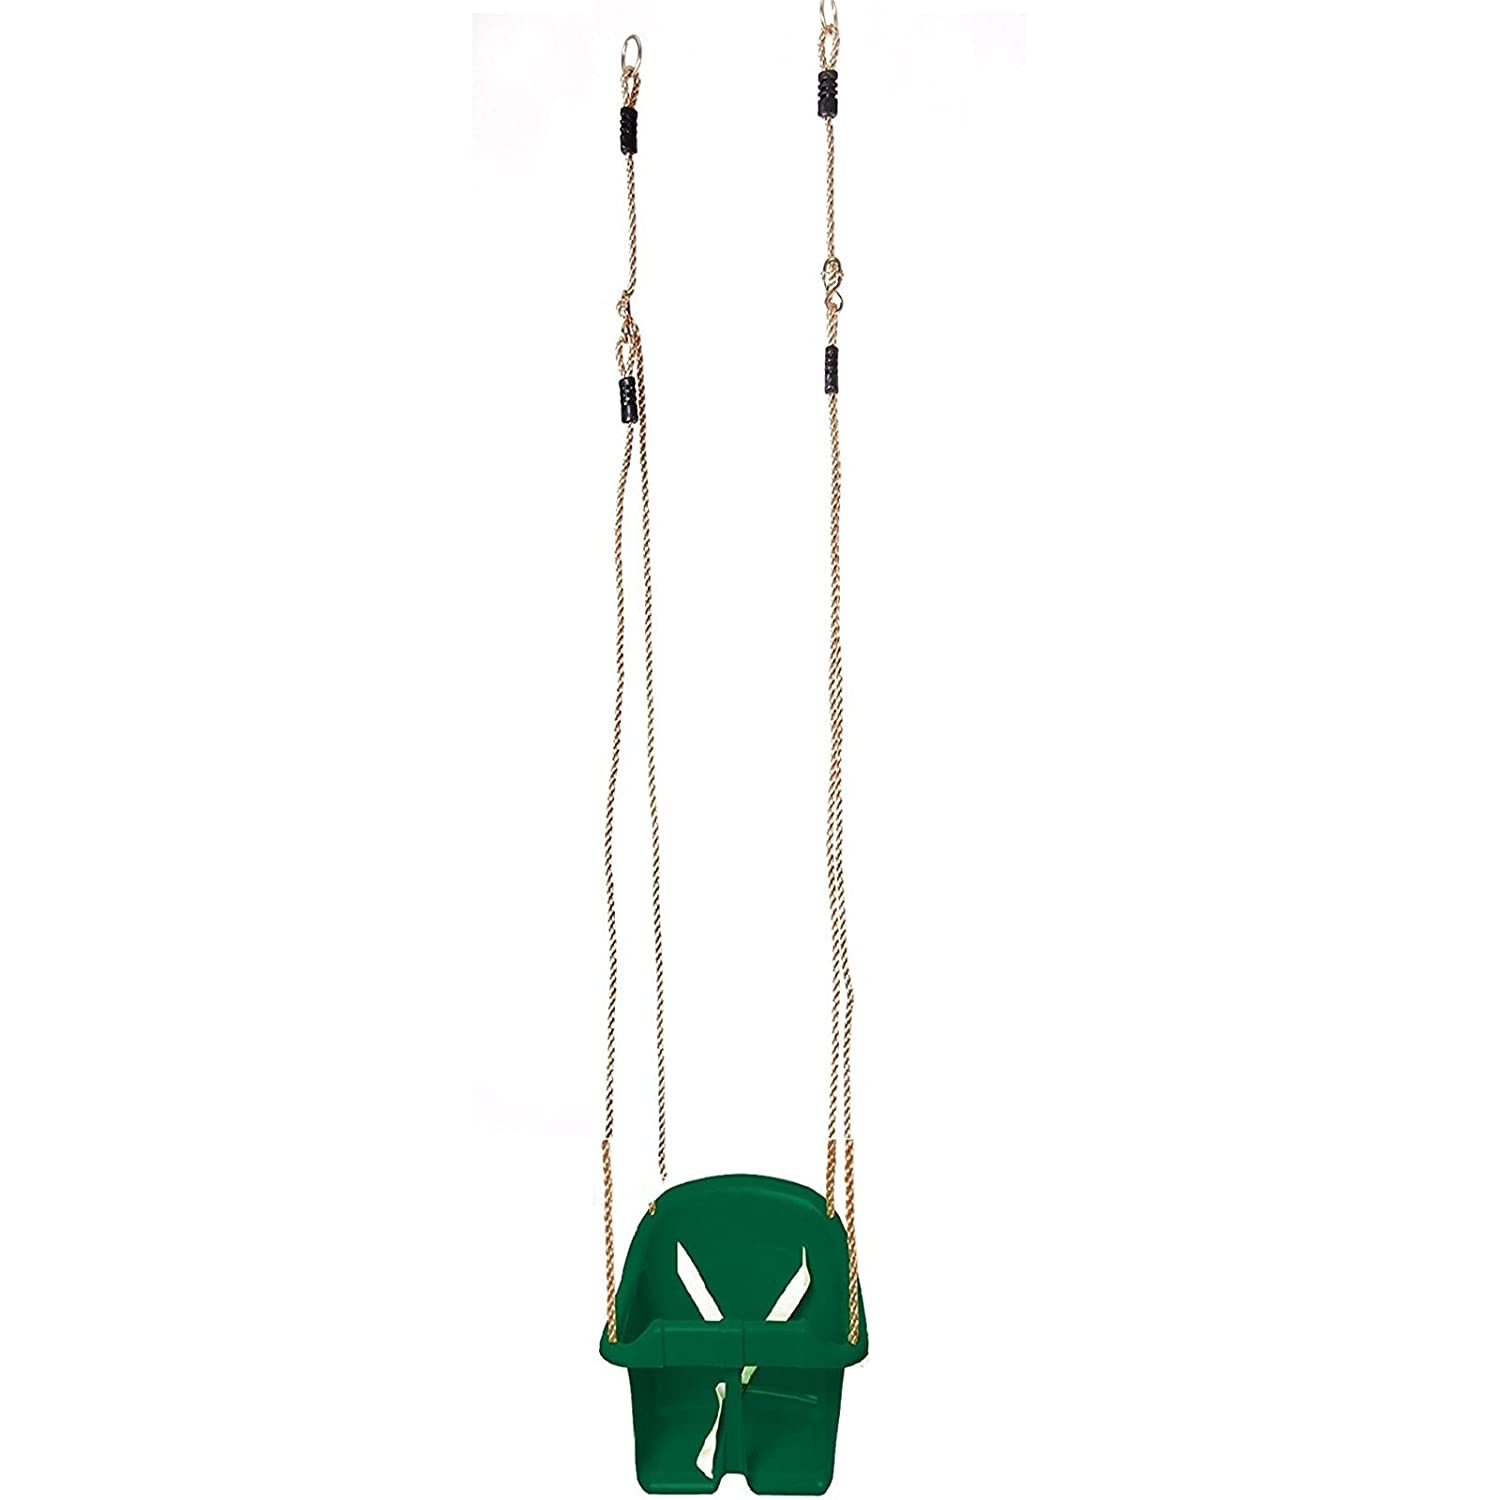 Red Sohler By Eurotrade W 2002437 Childs Plastic Rope Swing Kids Toddler Adjustable Outdoor Garden Hanging Bucket Safety Seat